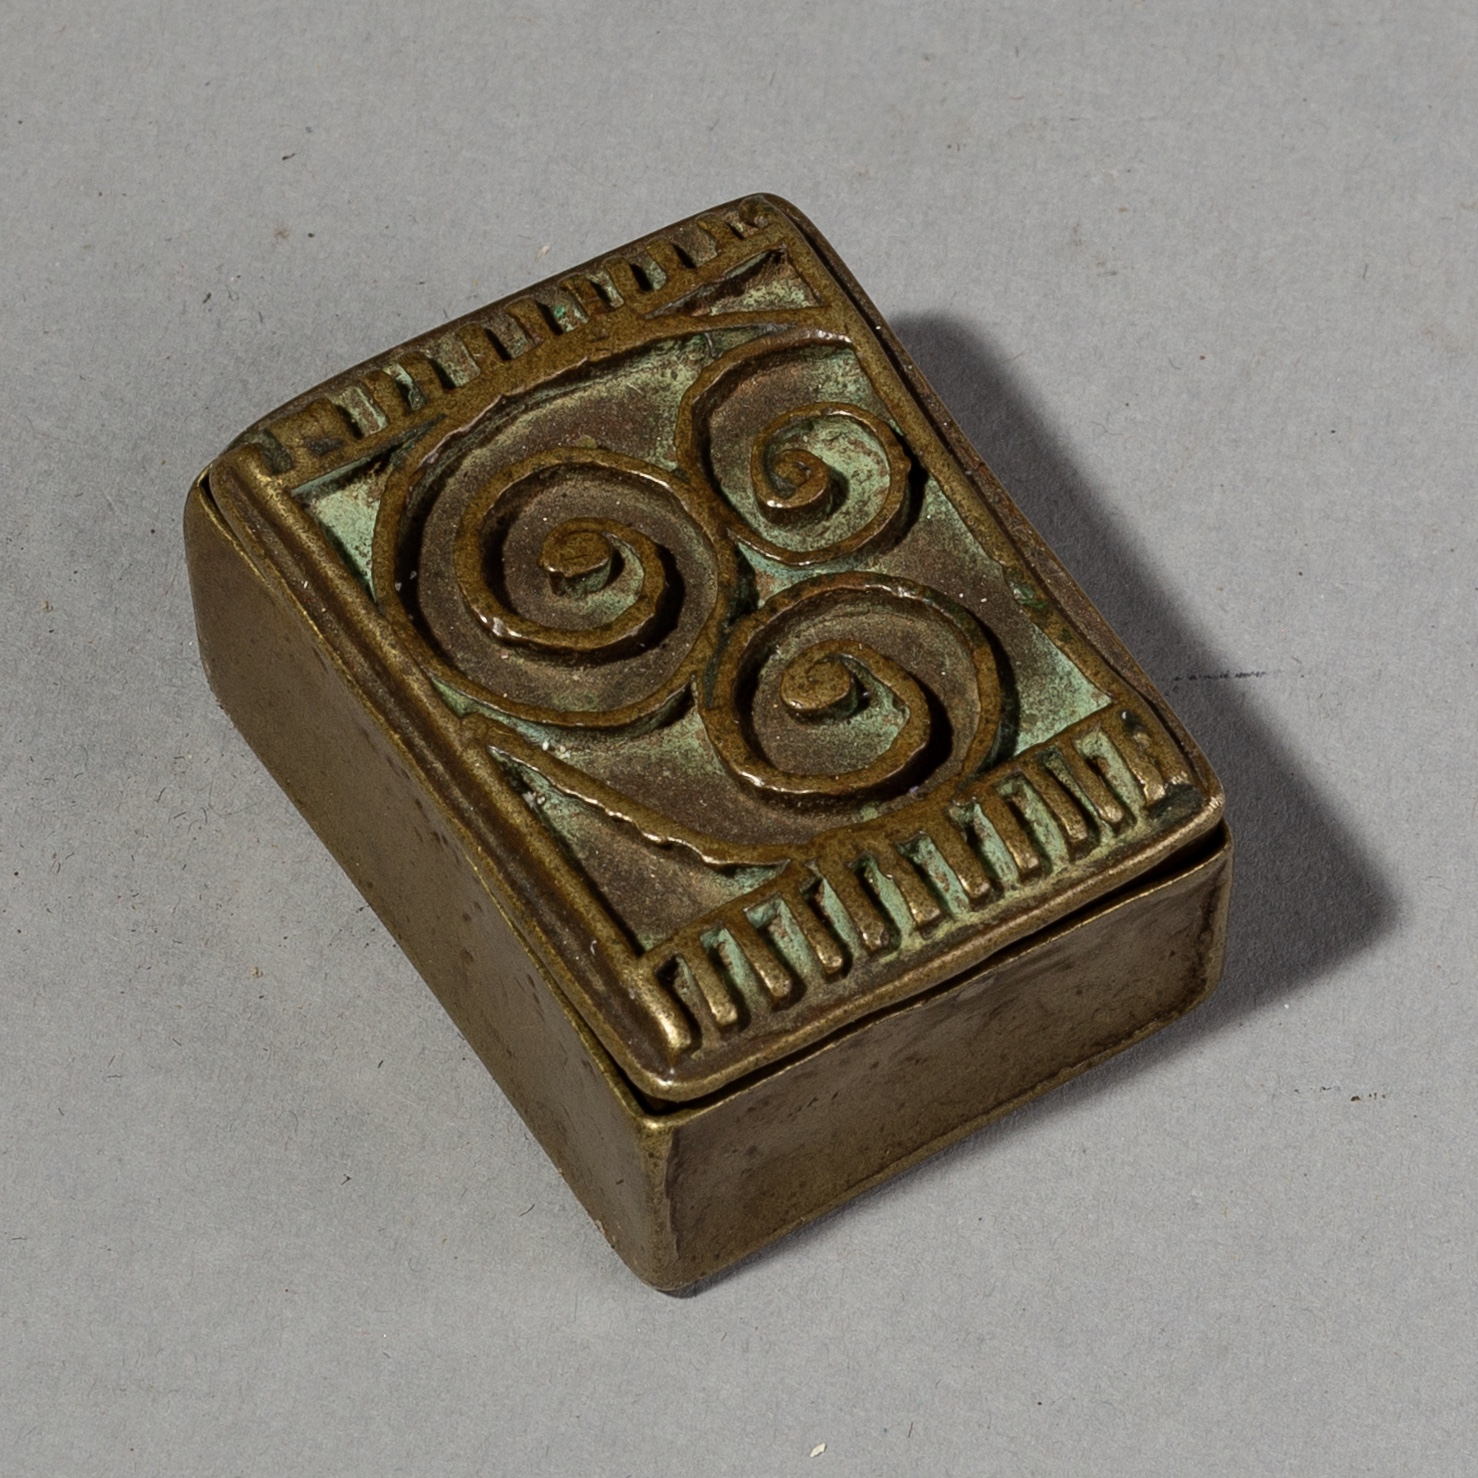 A FINE BAULE 19THC AKAN GOLD DUST BOX FROM THE AFRICAN GOLD COAST ( No 1844 )